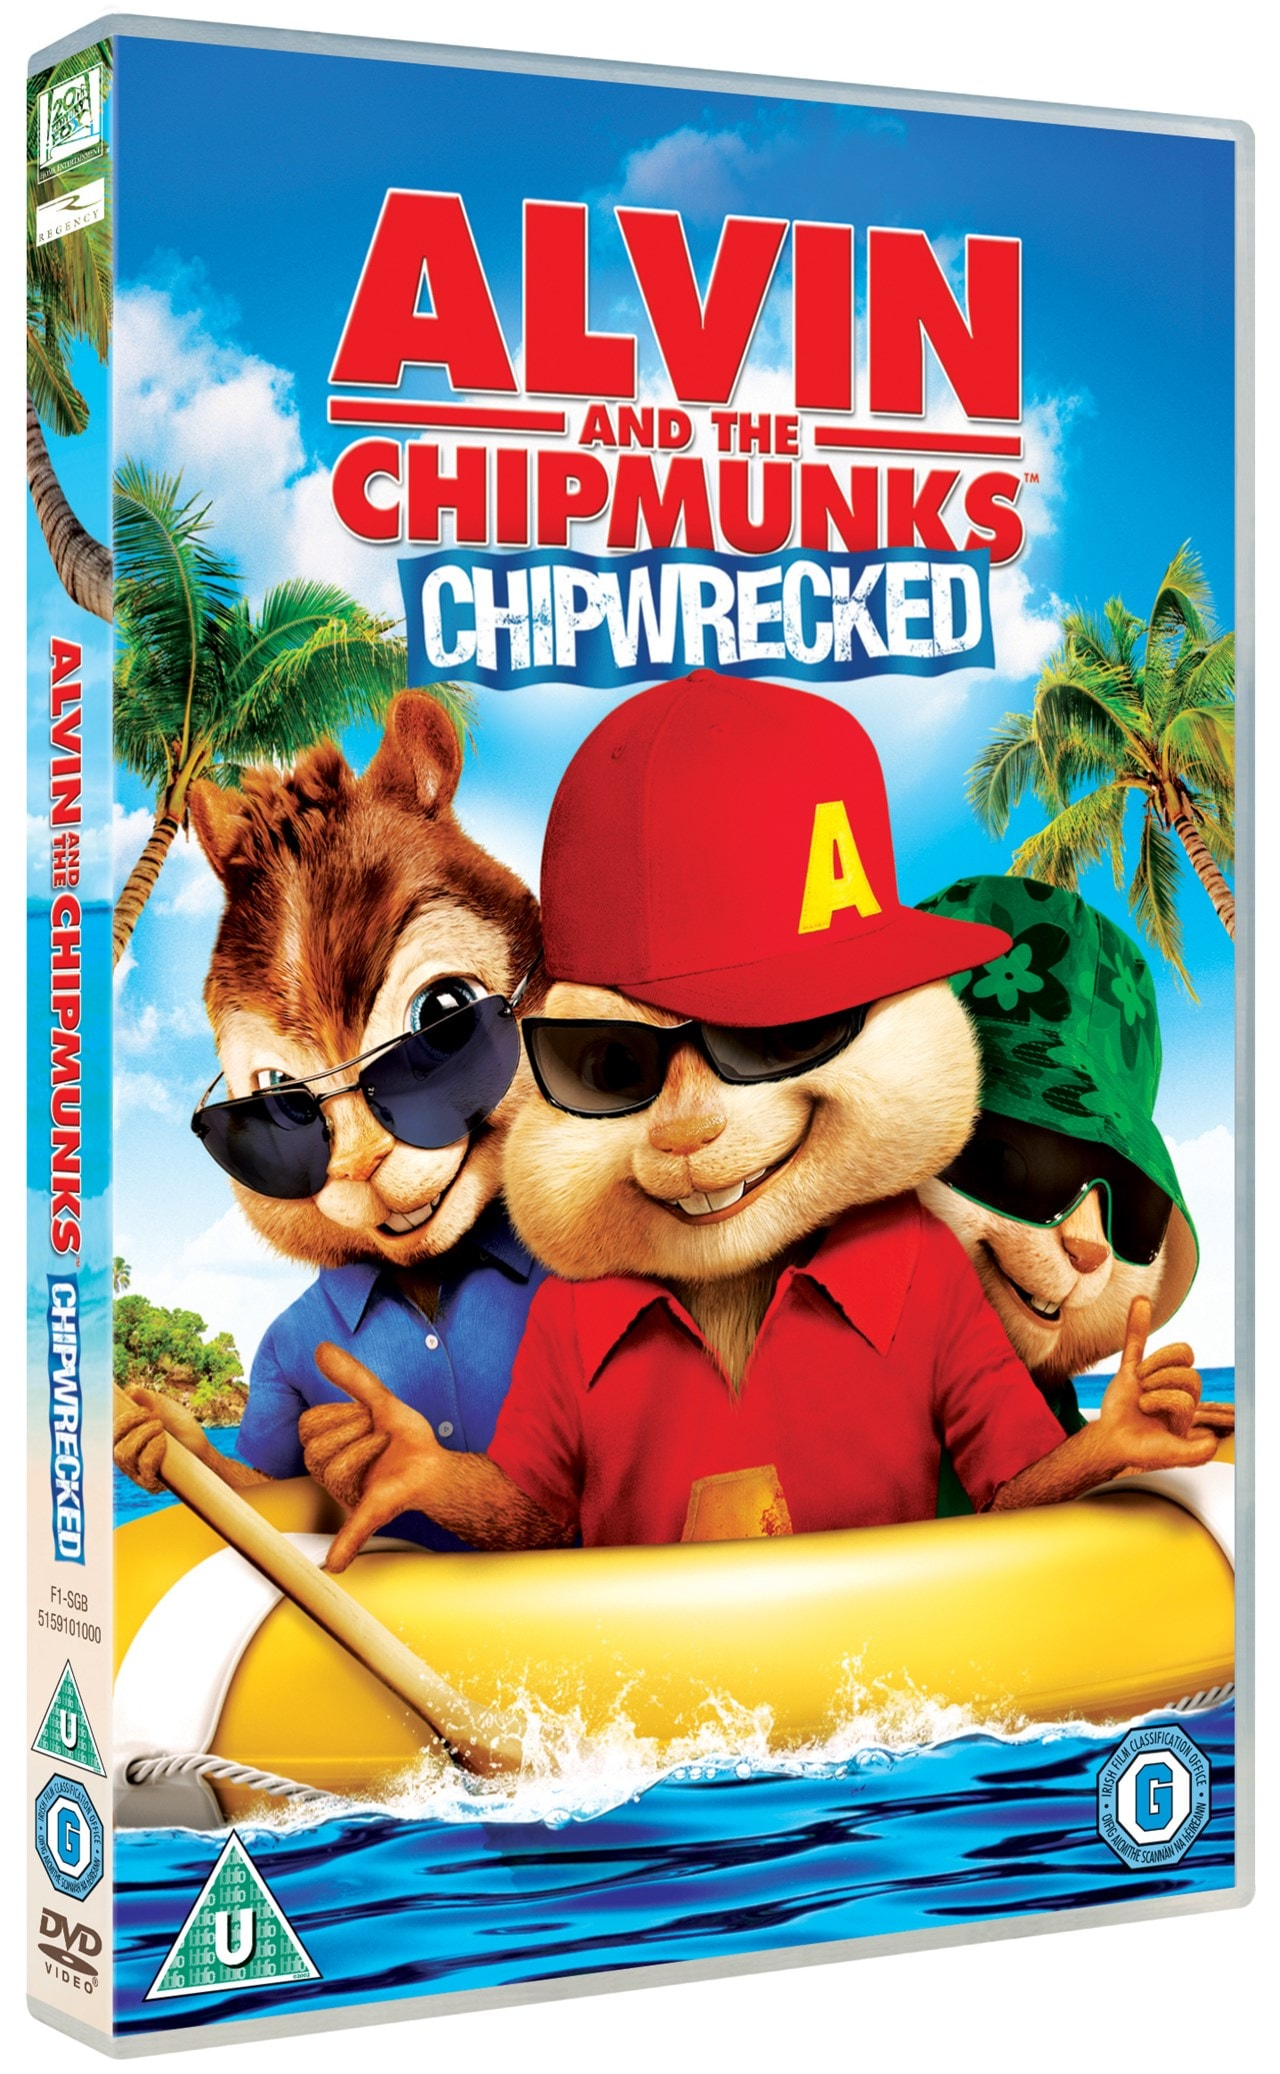 Alvin and the Chipmunks: Chipwrecked - 2